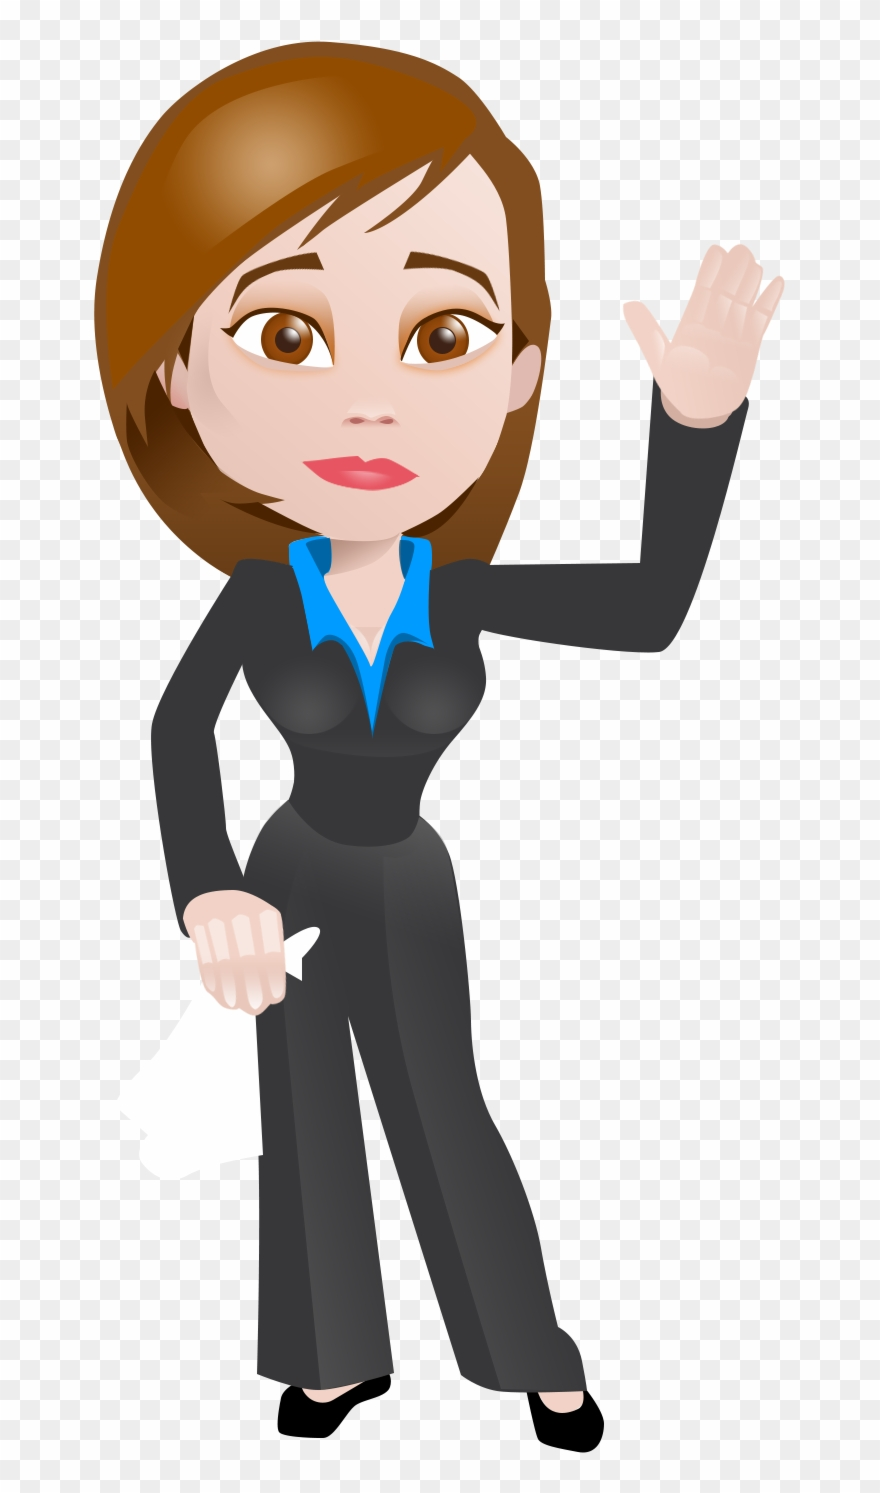 Business women clipart image black and white download Business Woman With Goodbye - Cartoons On Business Women Clipart ... image black and white download